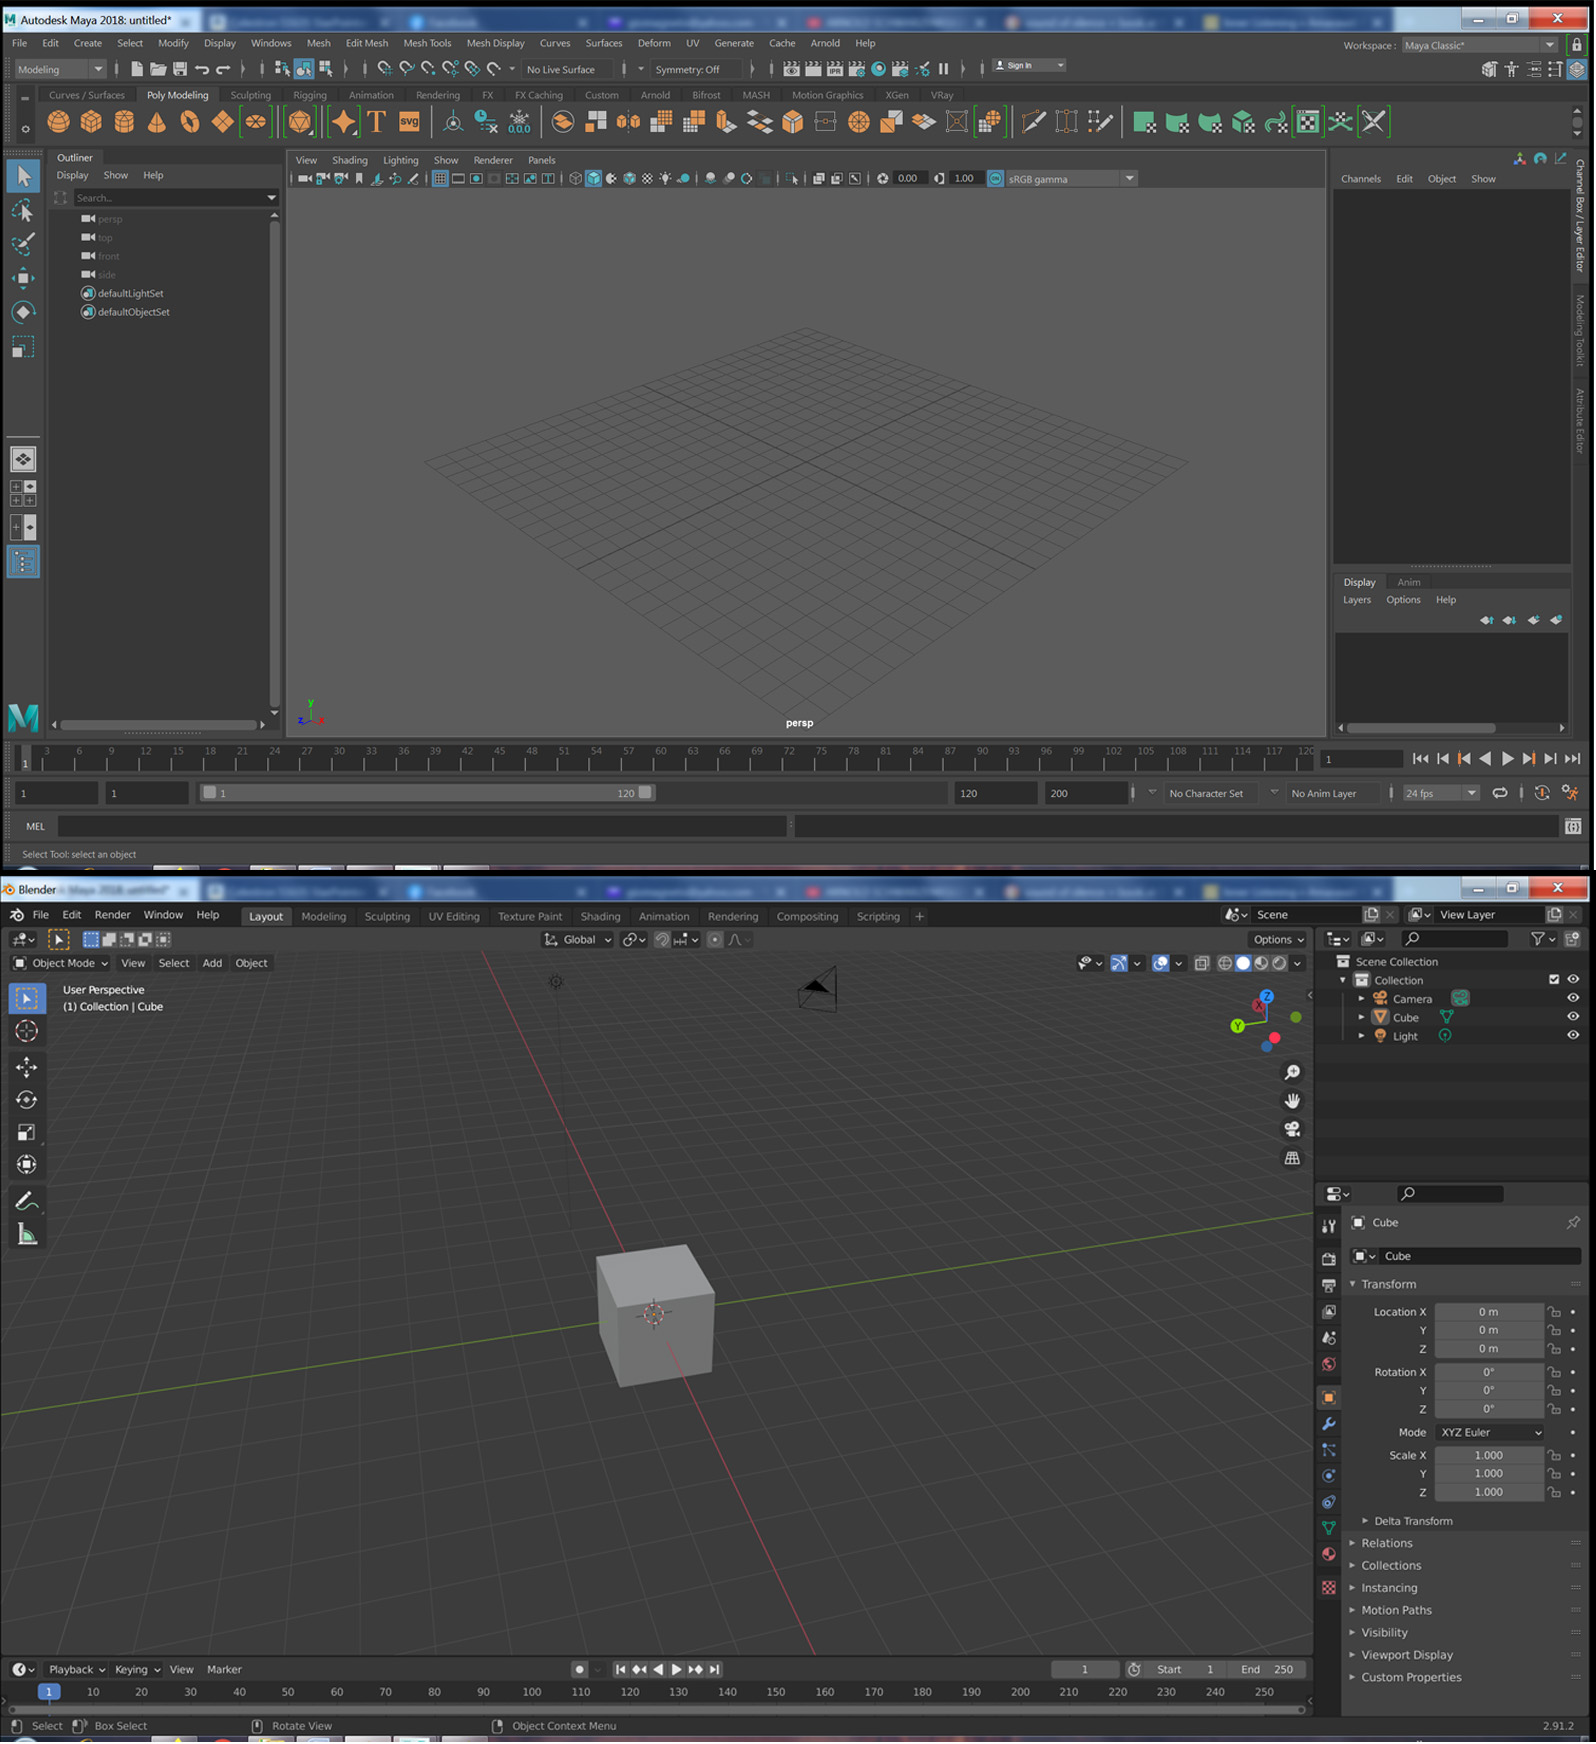 Comparing the Blender and Maya opening screens